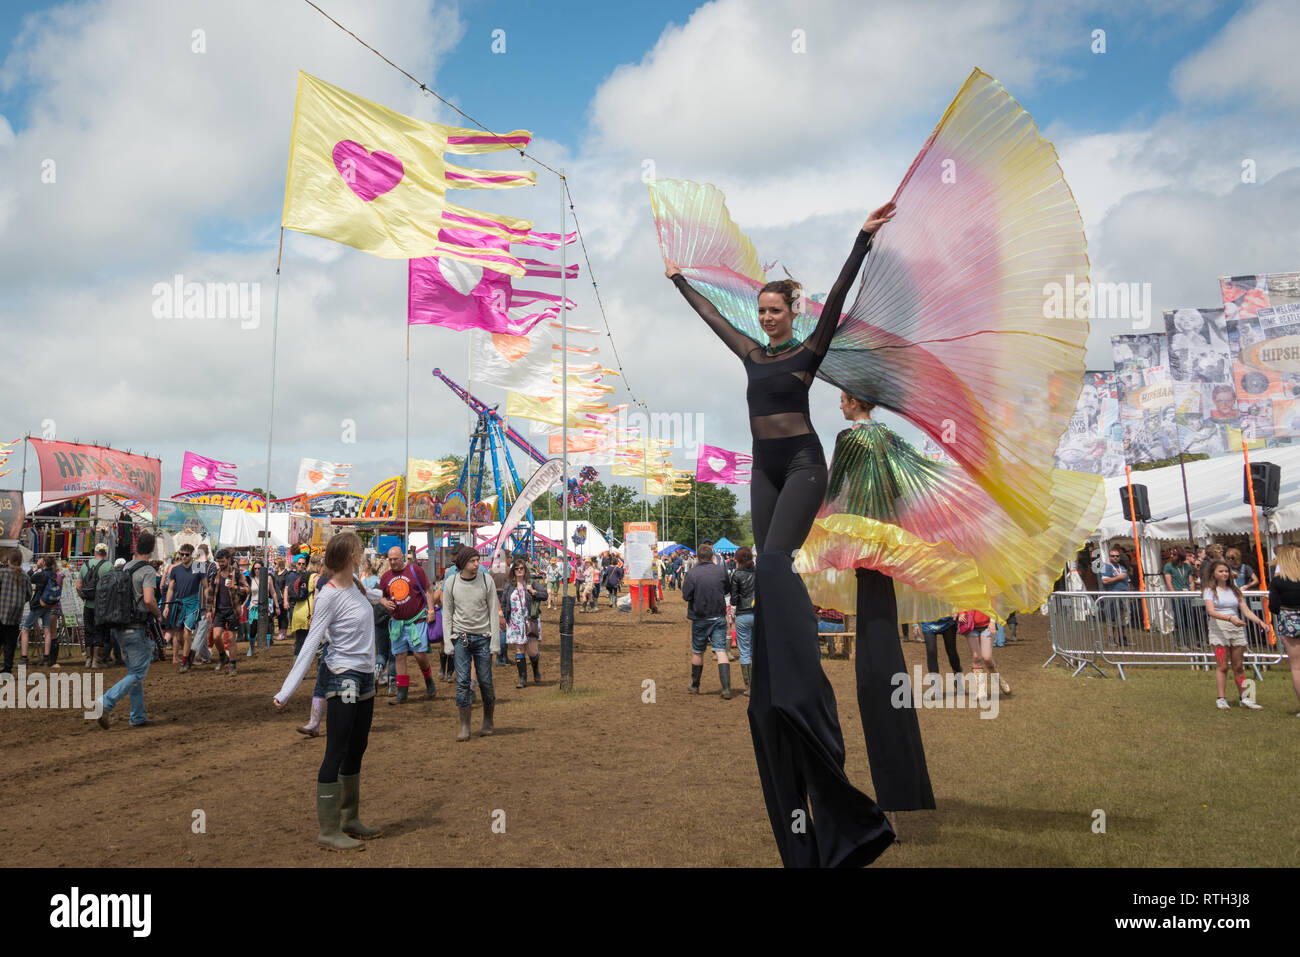 The Isle of Wight Festival, 2015 Stock Photo